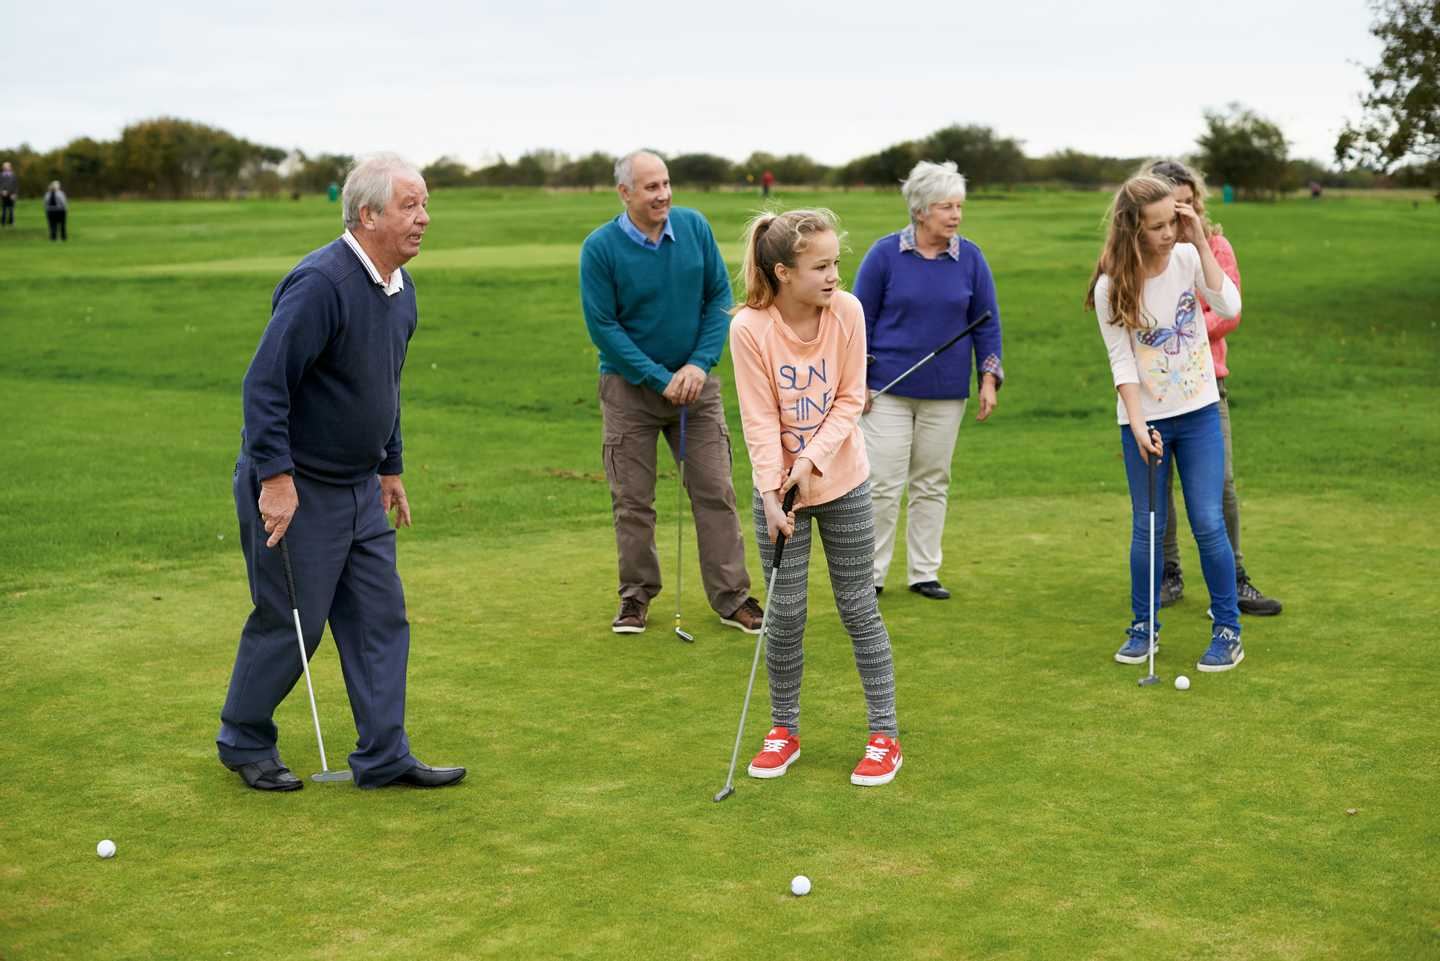 Family enjoying a game of golf at Church Farm